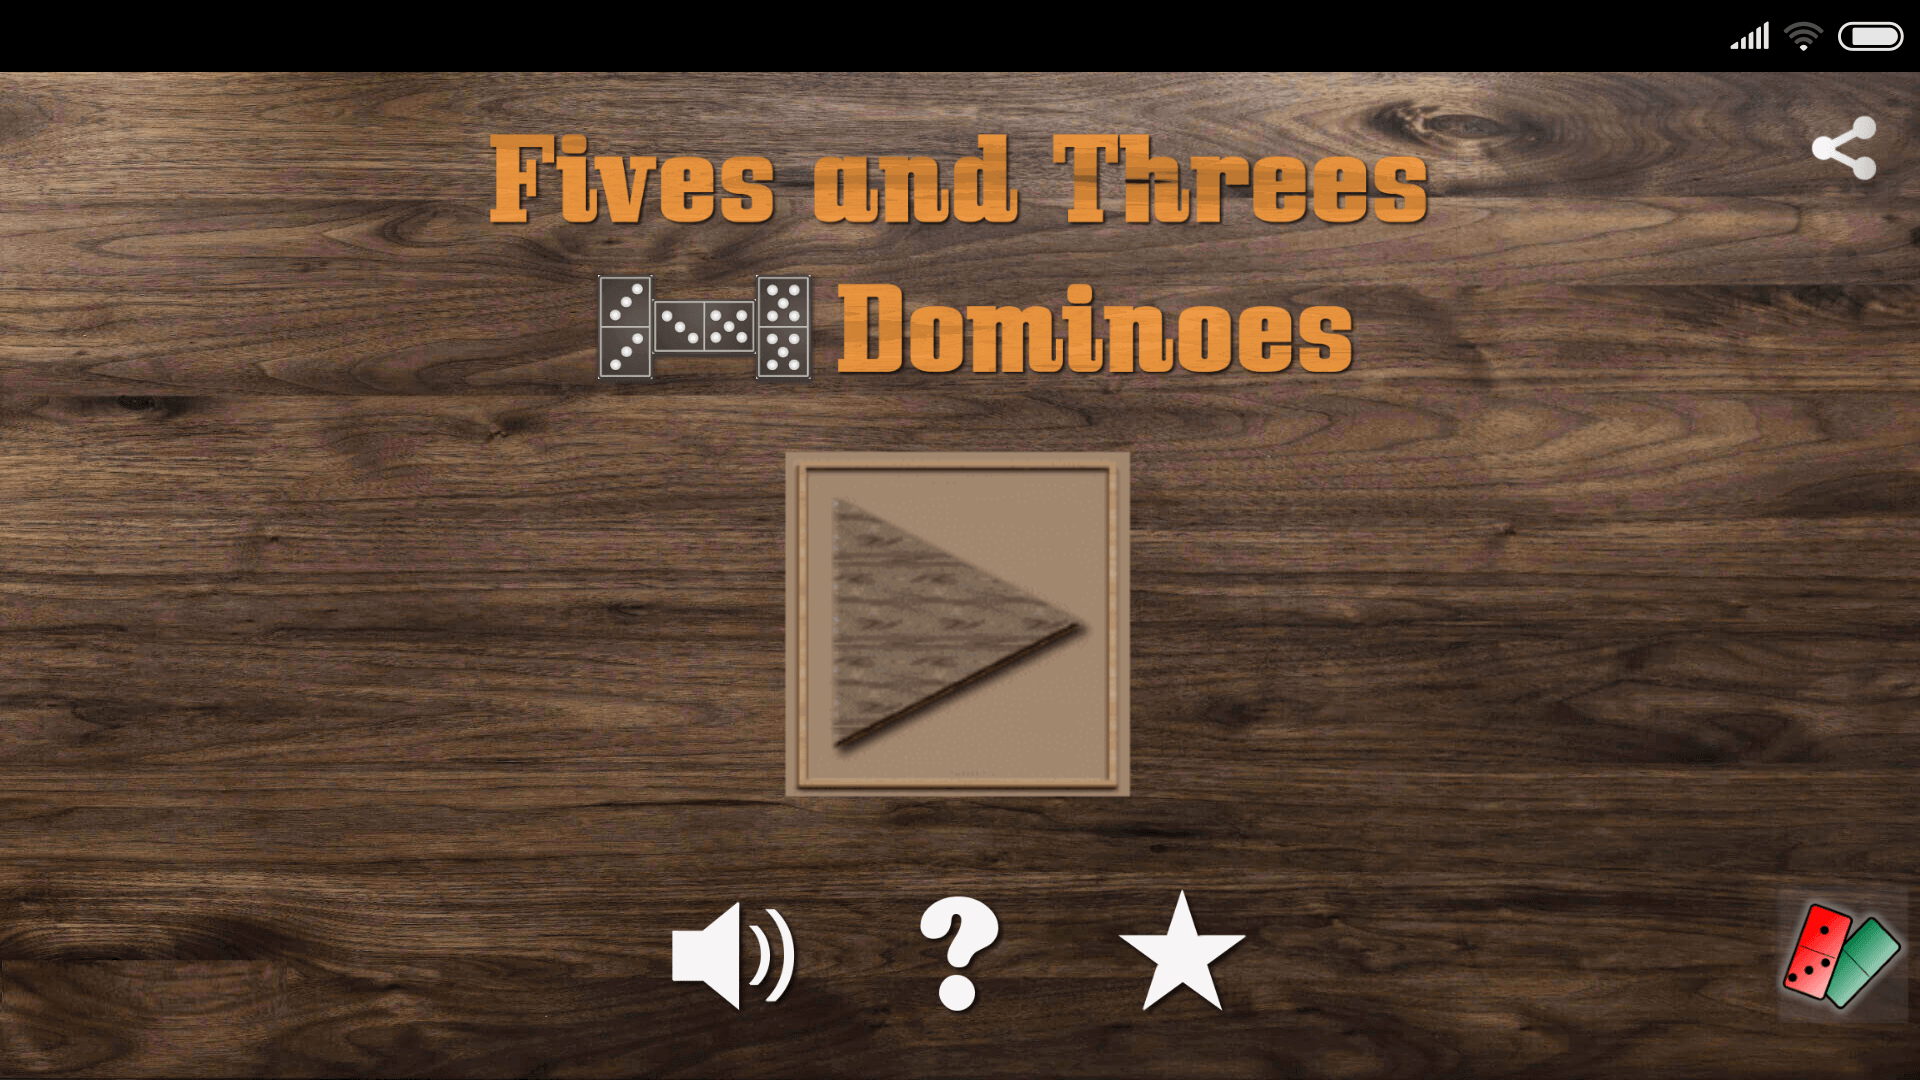 Fives and Threes Dominoes